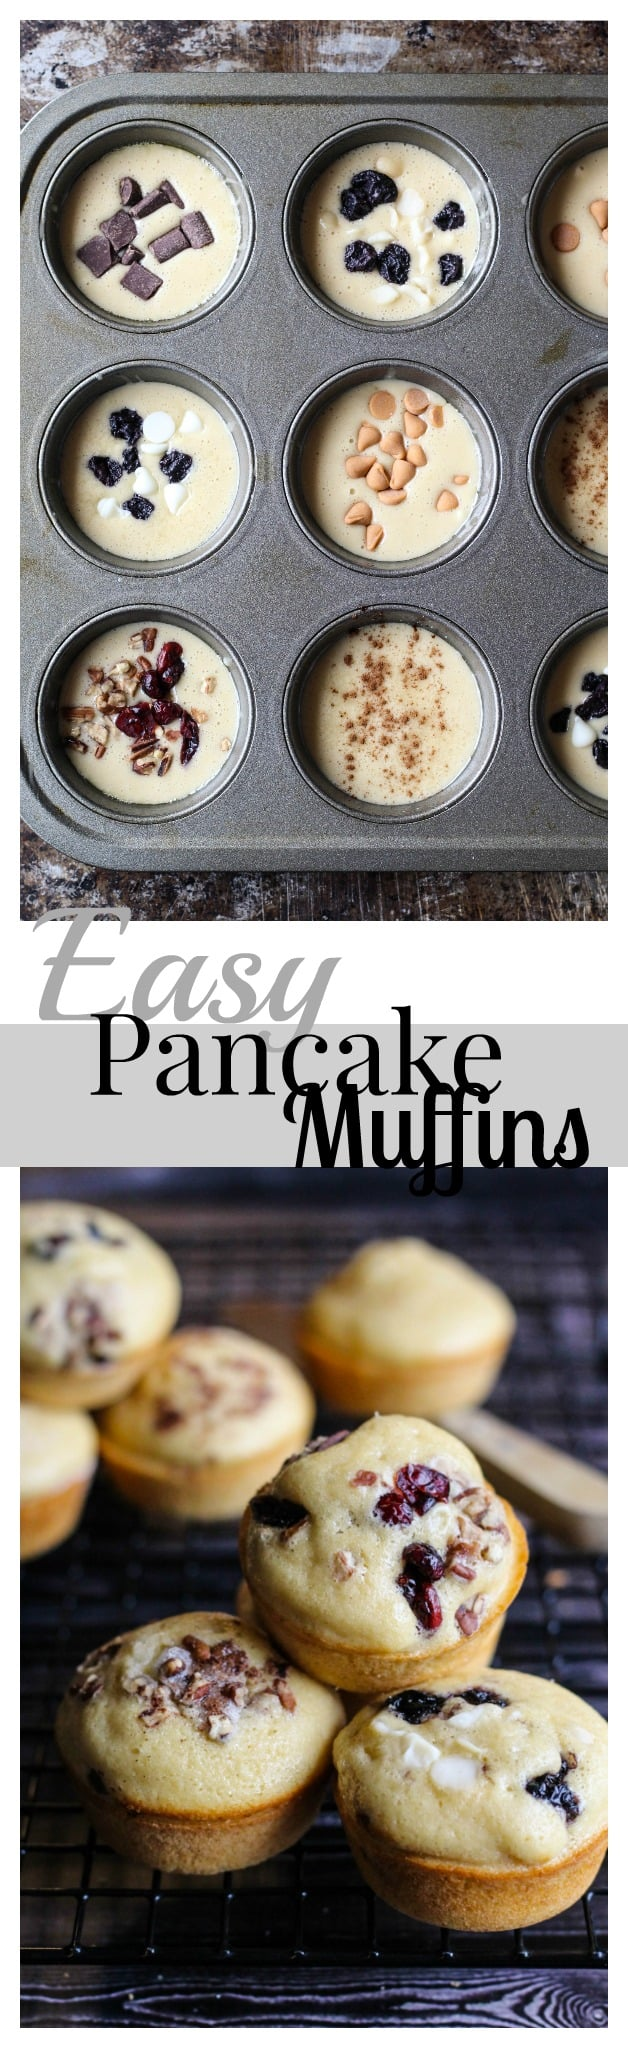 Easy pancake muffins life a little brighter love these easy pancake muffins try these butterscotch french toast muffins ccuart Image collections